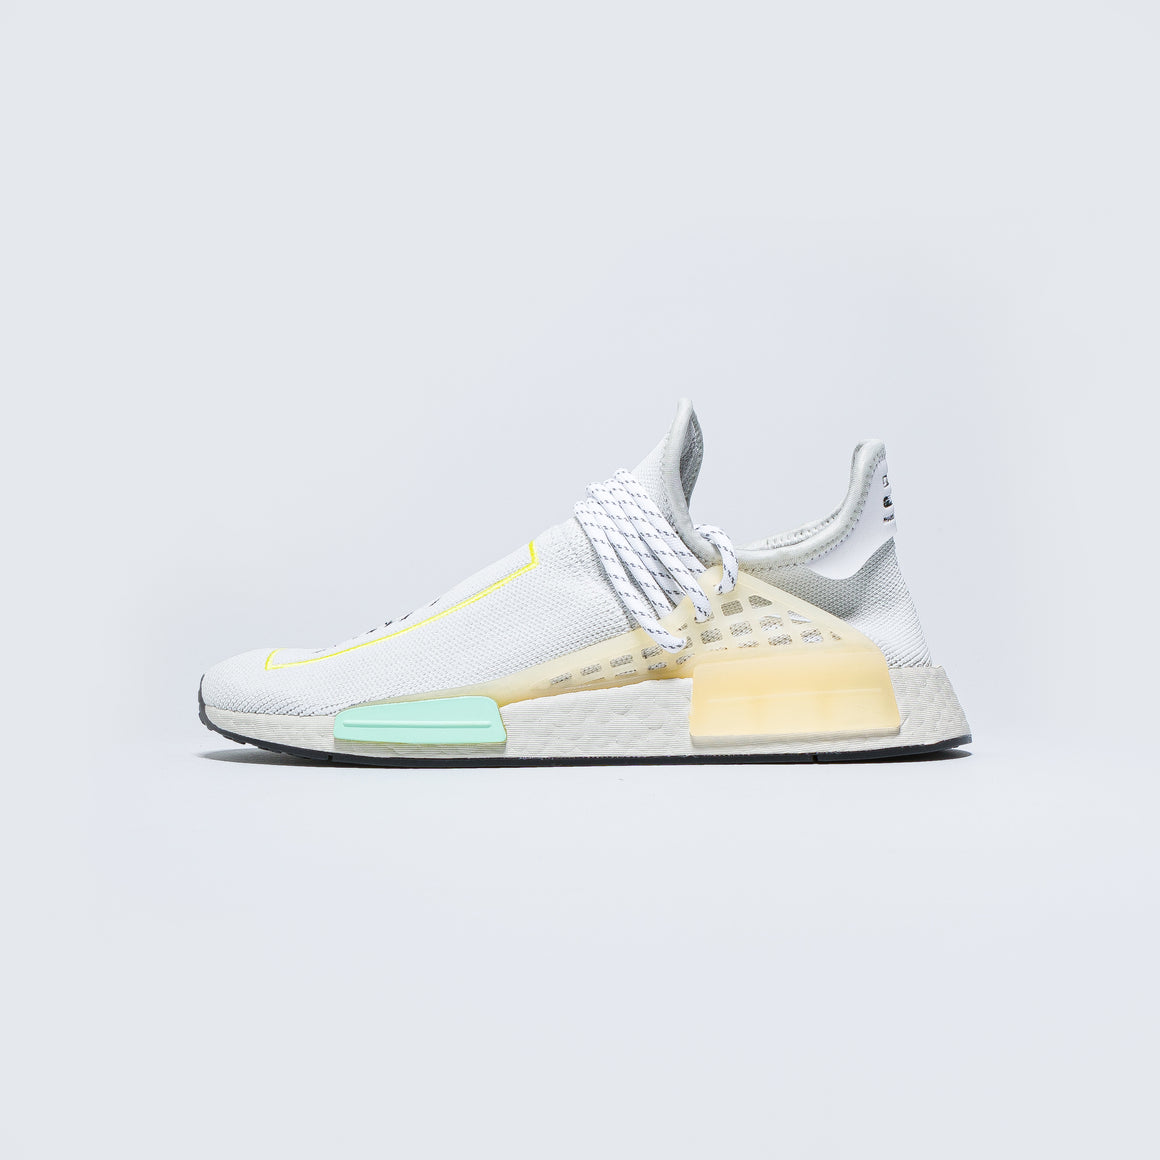 adidas - HU NMD - Crystal White/Clear Mint - Up There